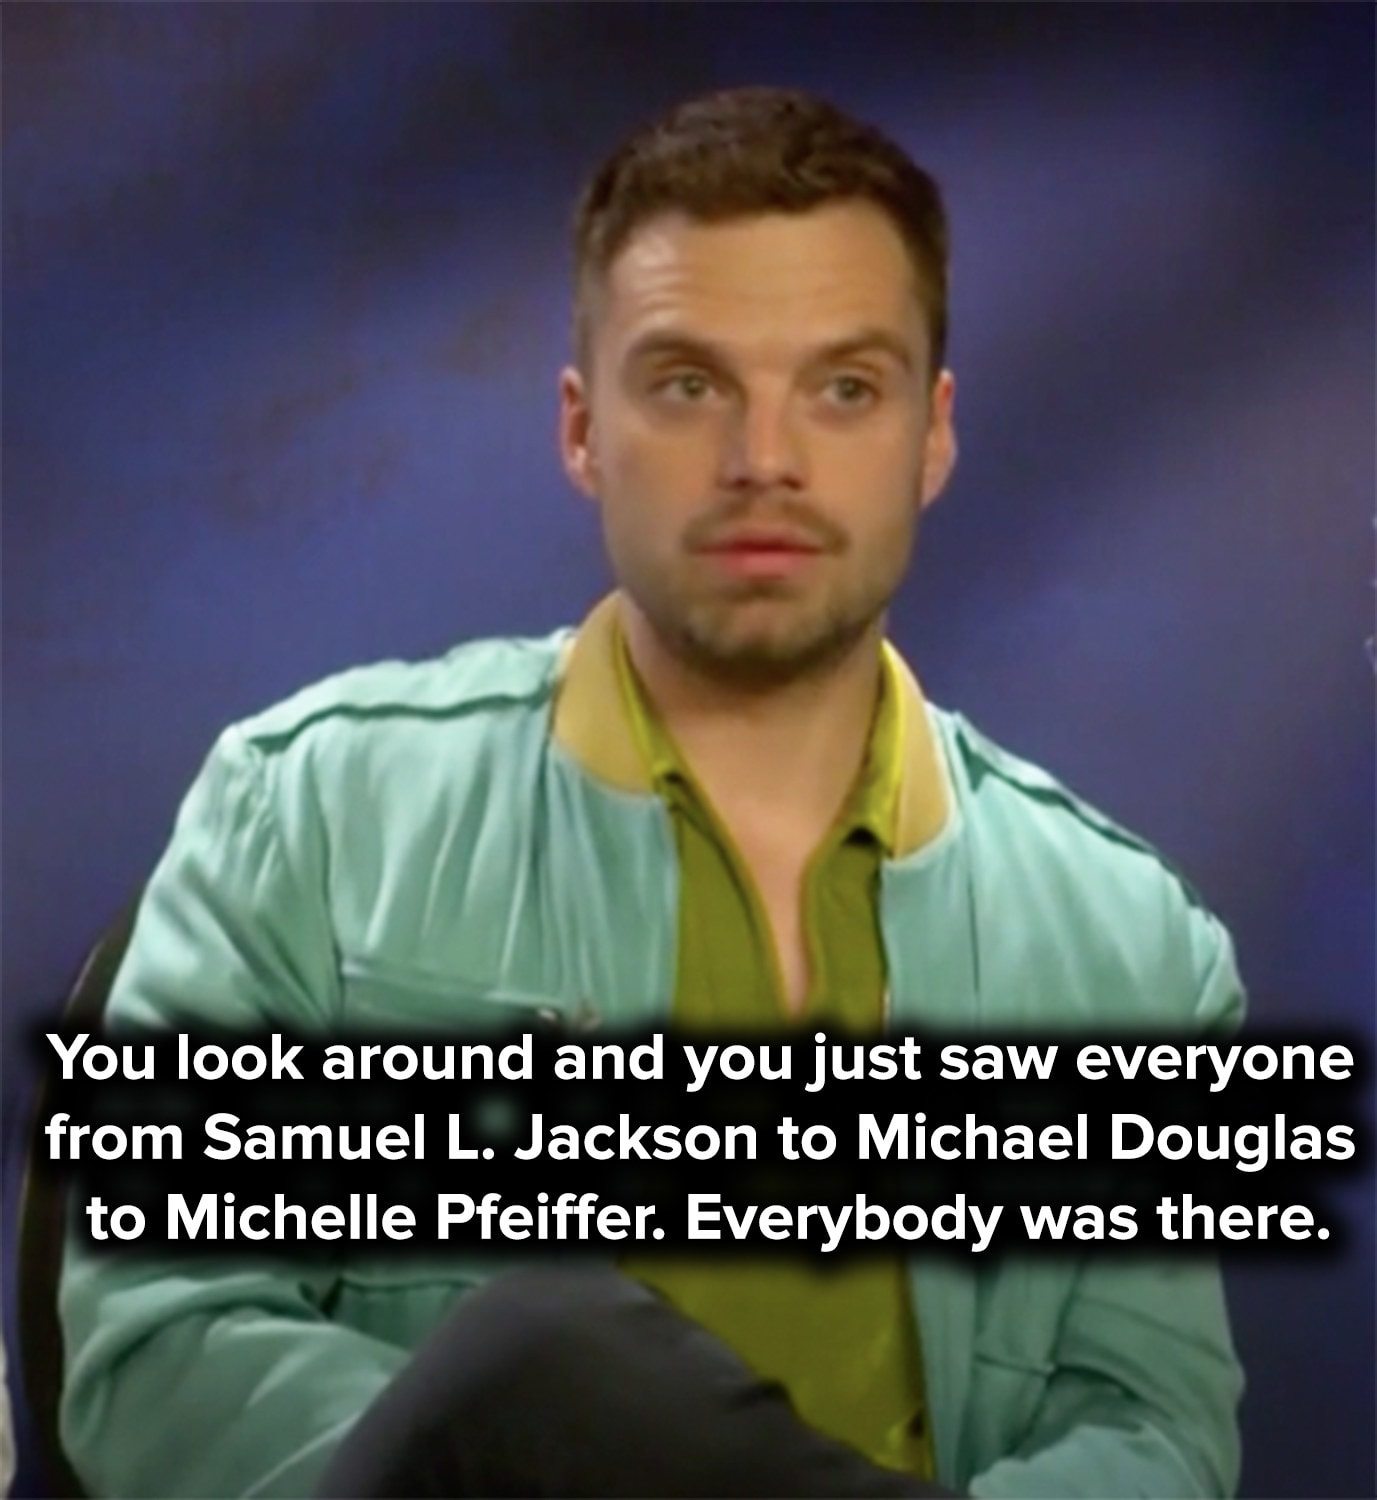 Seb says that he saw everyone from Samuel L Jackson to Michael Douglas to Michelle Pfeiffer